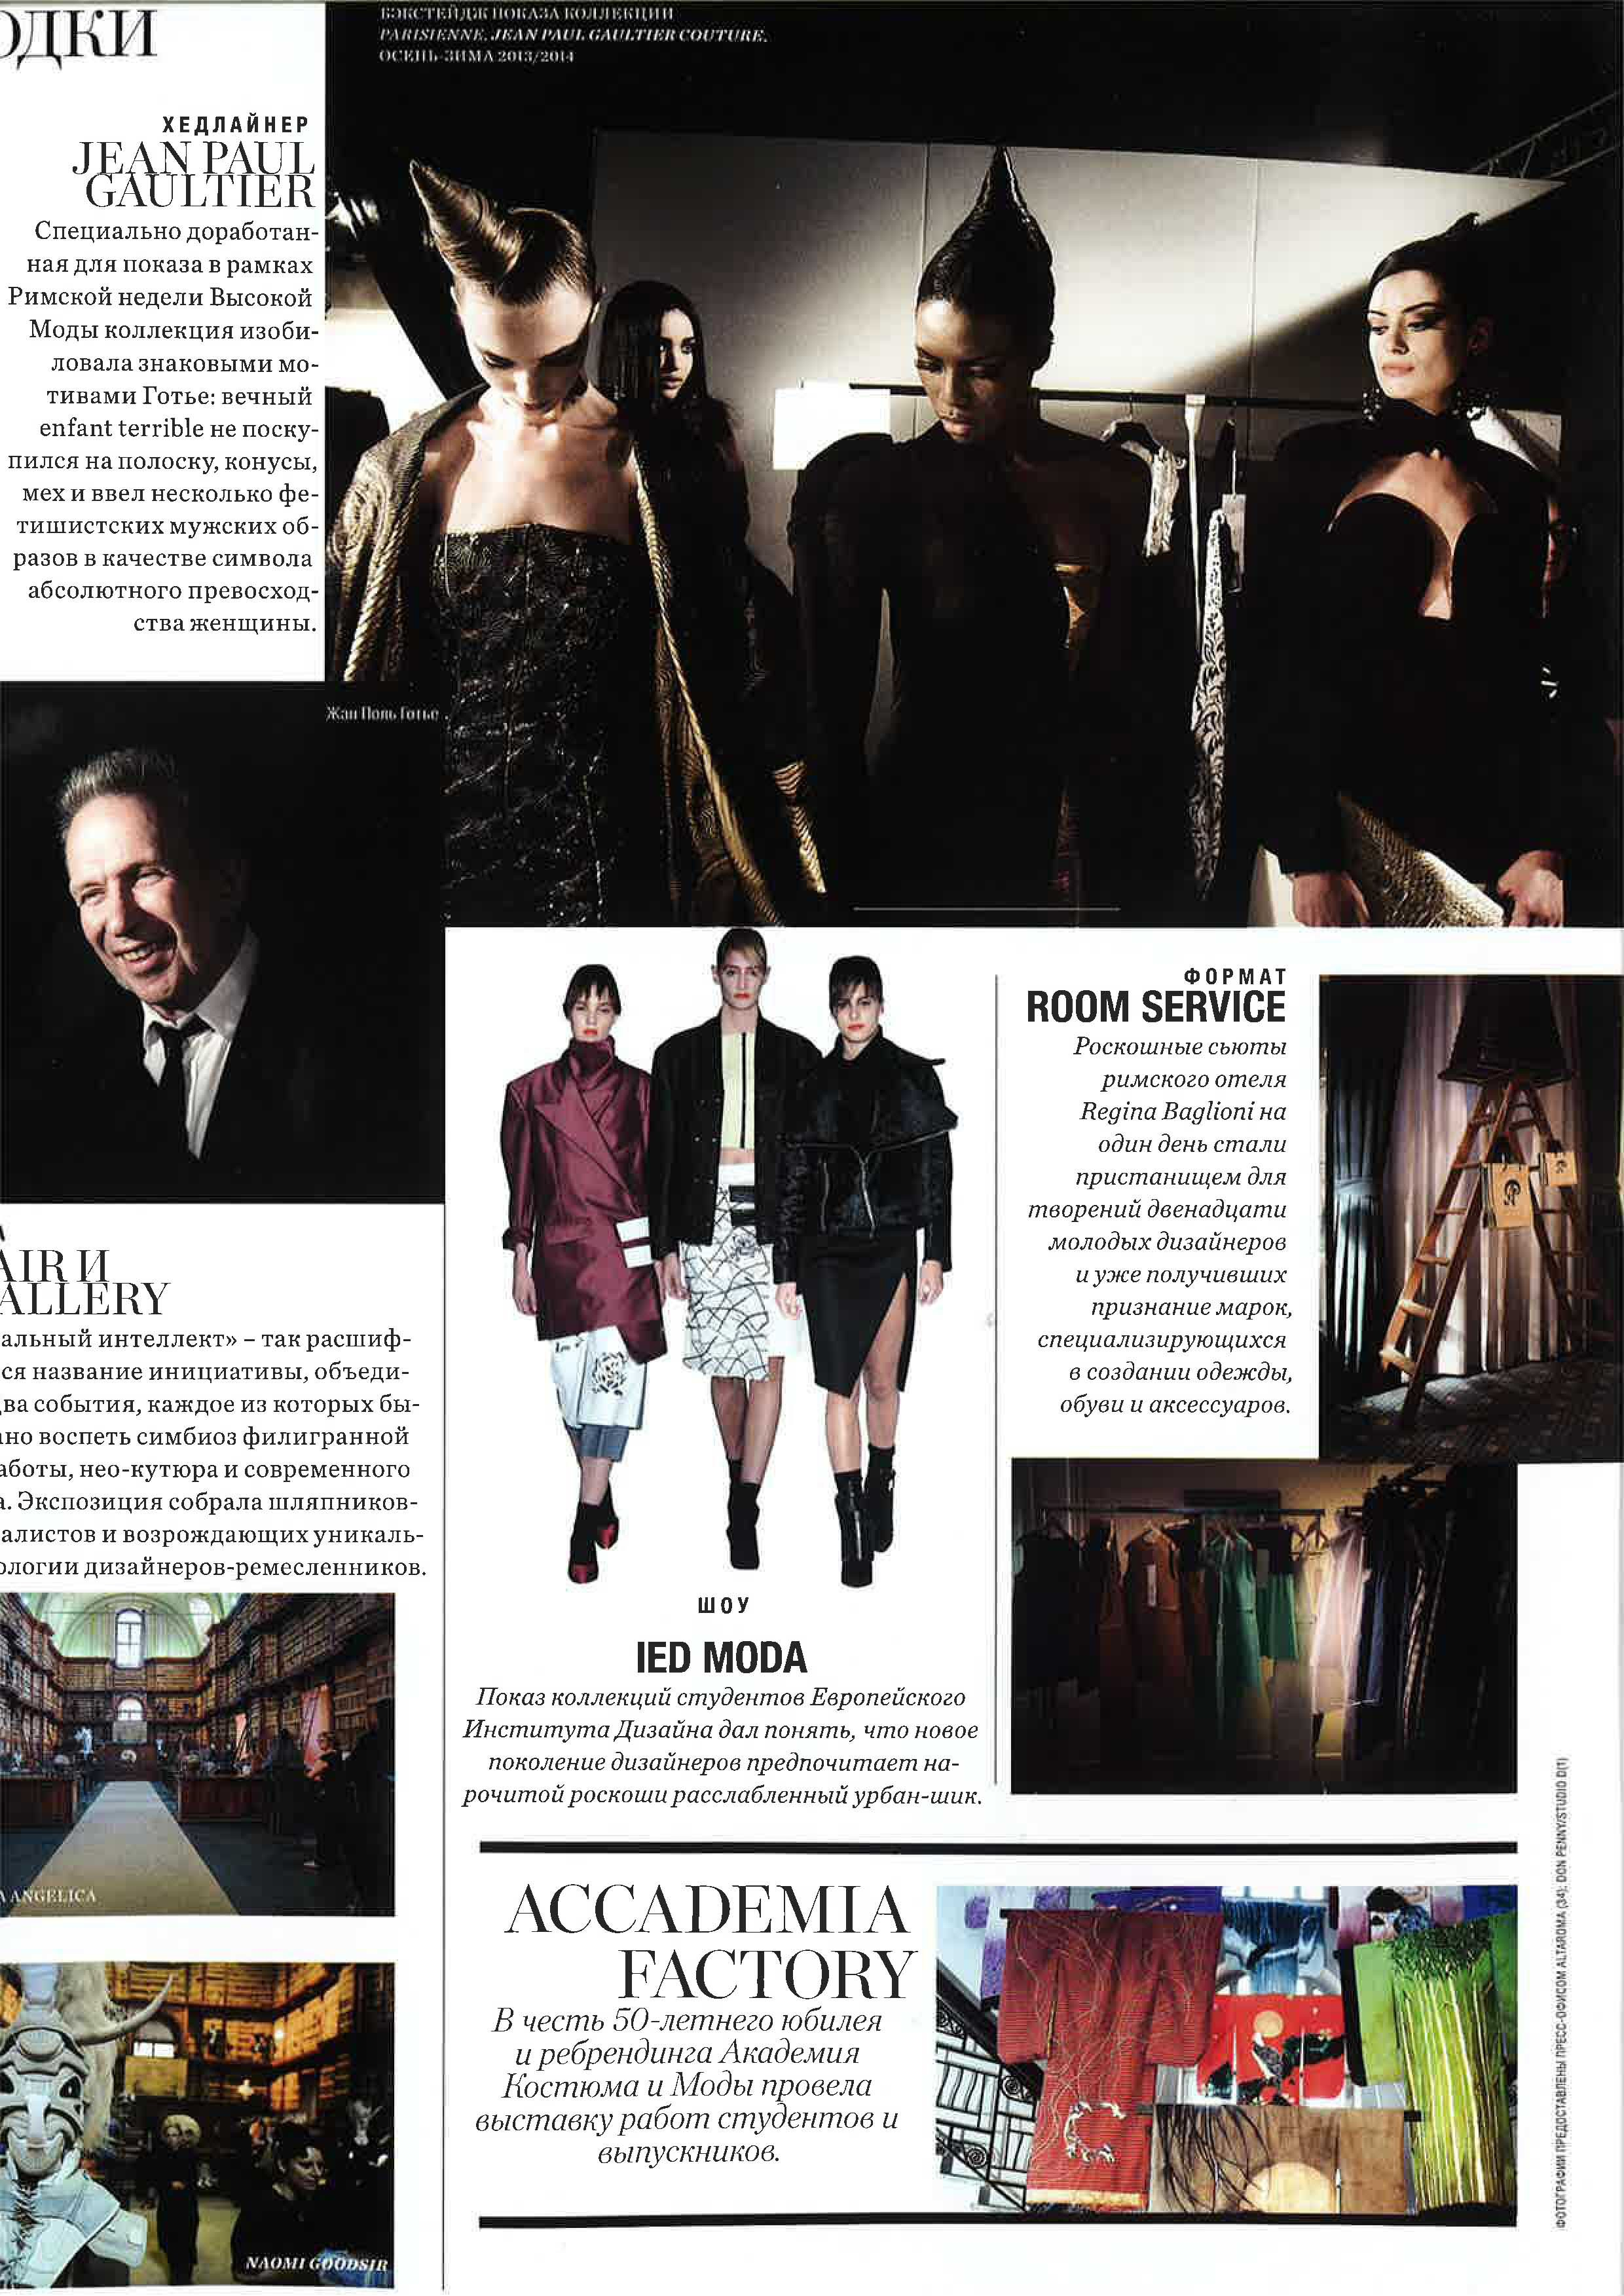 Accademia Factory 2013 R/EVOLUTION, the event of Accademia Costume & Moda during the summer Edition of @AltaRoma , on Harper's Bazaar Russia !